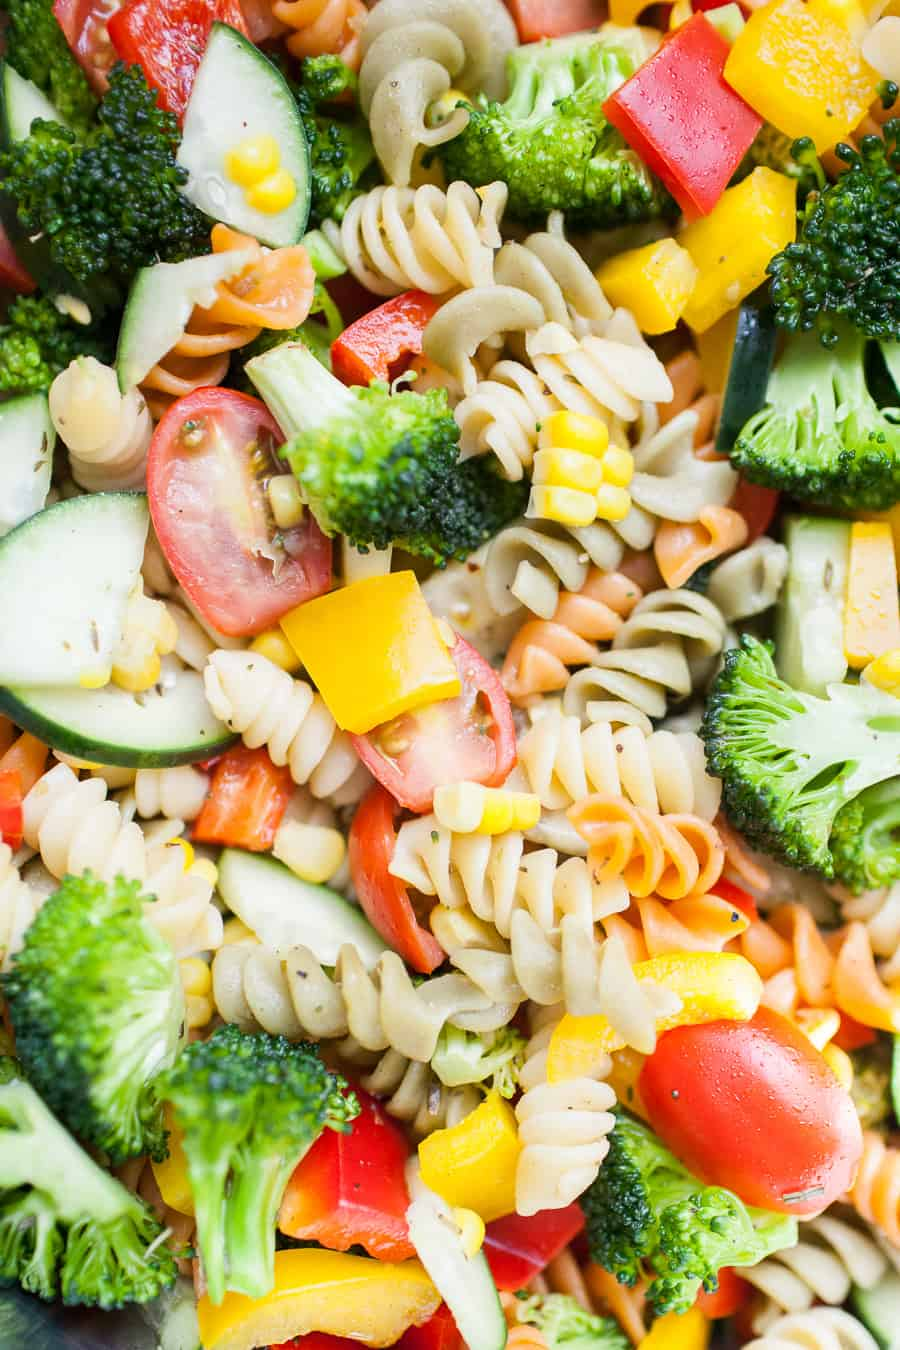 Veggie packed pasta salad is a perfect side dish for any occasion. It's great for the warmer weather for potlucks outside and perfect for brightening the colder months, too! The pasta salad is made with a mayo-free dressing and packed with vegetables like cucumbers, bell peppers, tomatoes, corn and topped with feta cheese.?